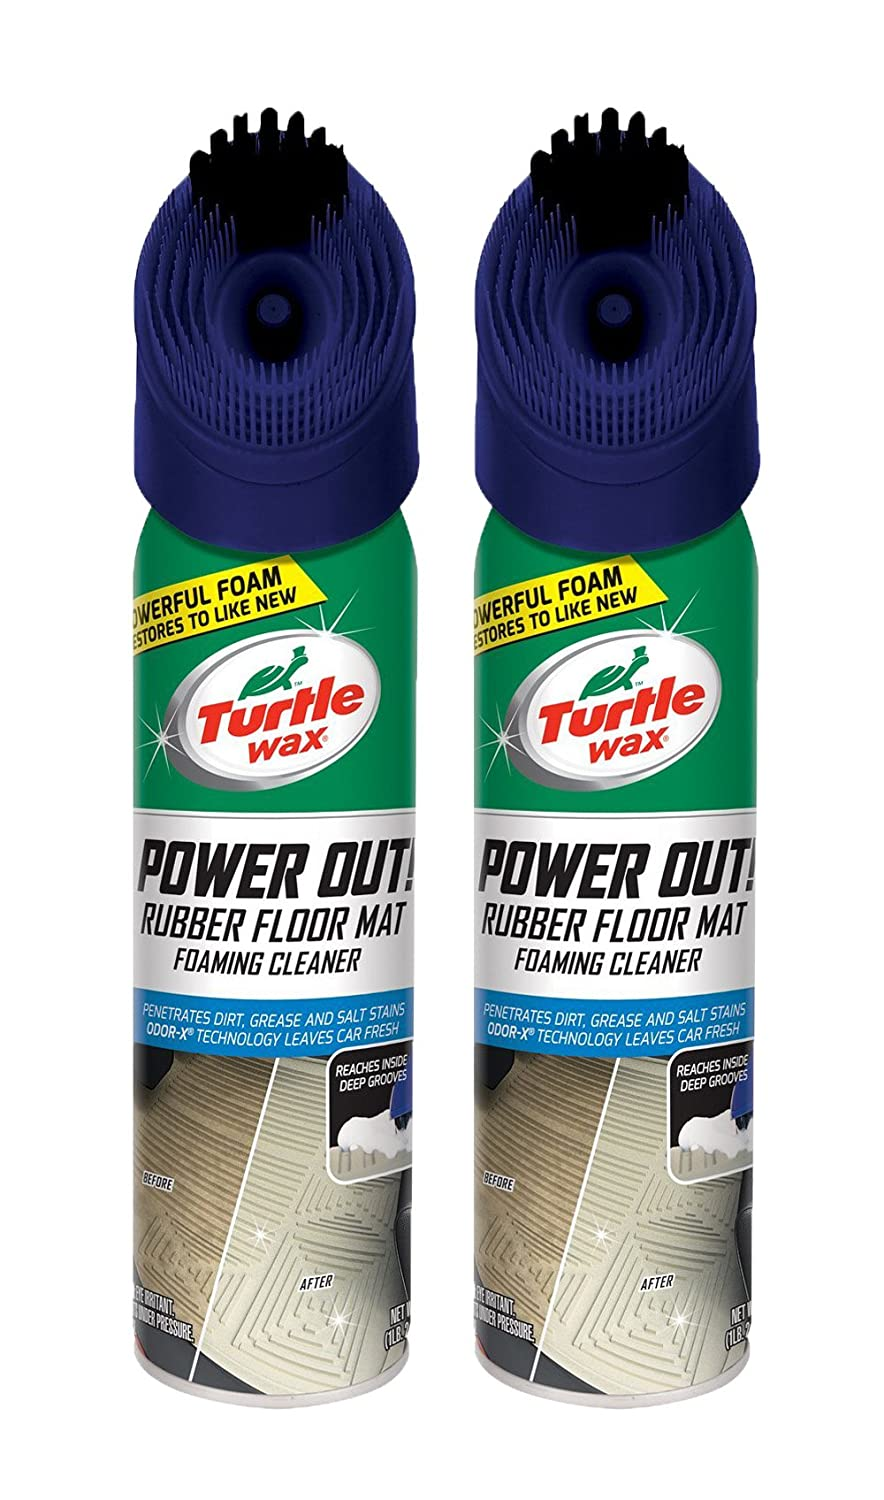 Turtle Wax Power Out Rubber Floor Mat Heavy Duty Cleaner (2 Pack)